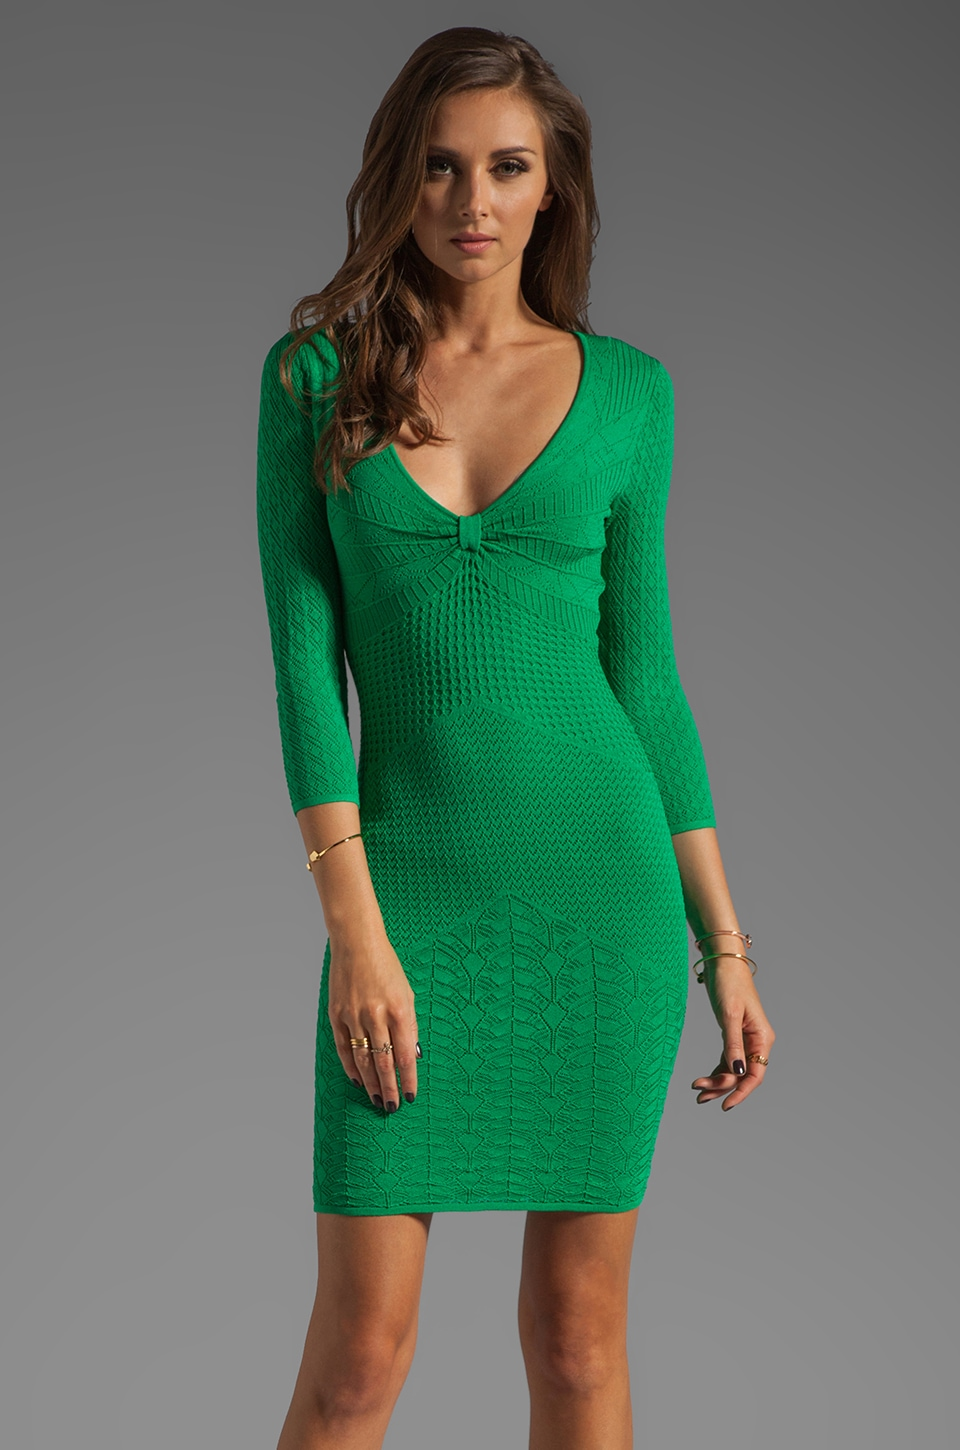 Catherine Malandrino 3/4 Sleeve Deep V Neck Mixed Pointelle Dress in Vert